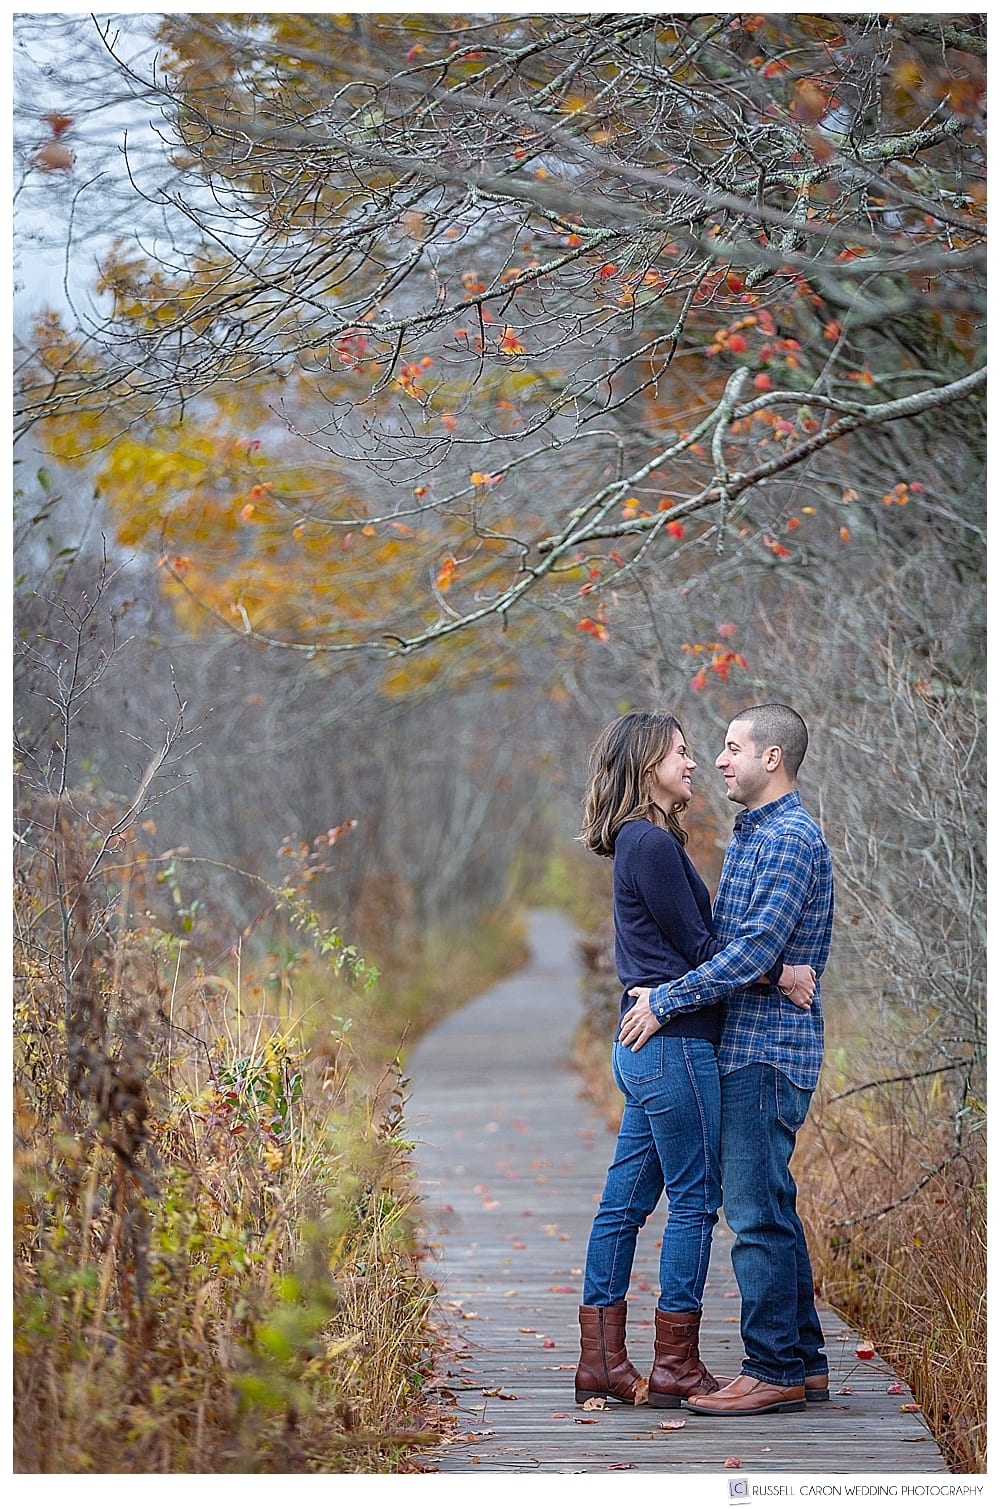 man and woman hugging each other on a wooden board walk in the fall foliage